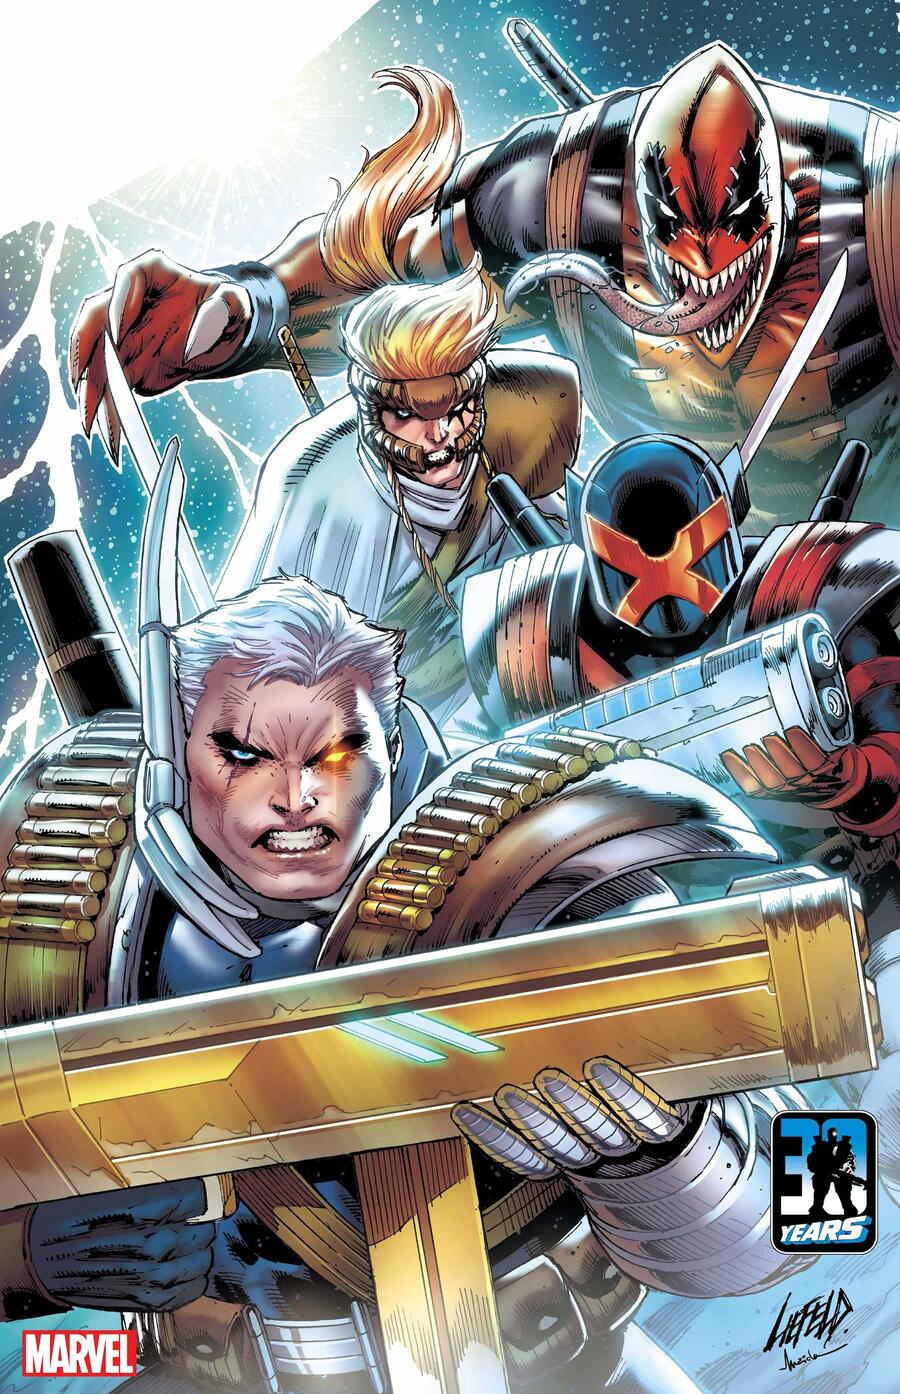 X-FORCE: KILLSHOT #1 cover by Rob Liefeld